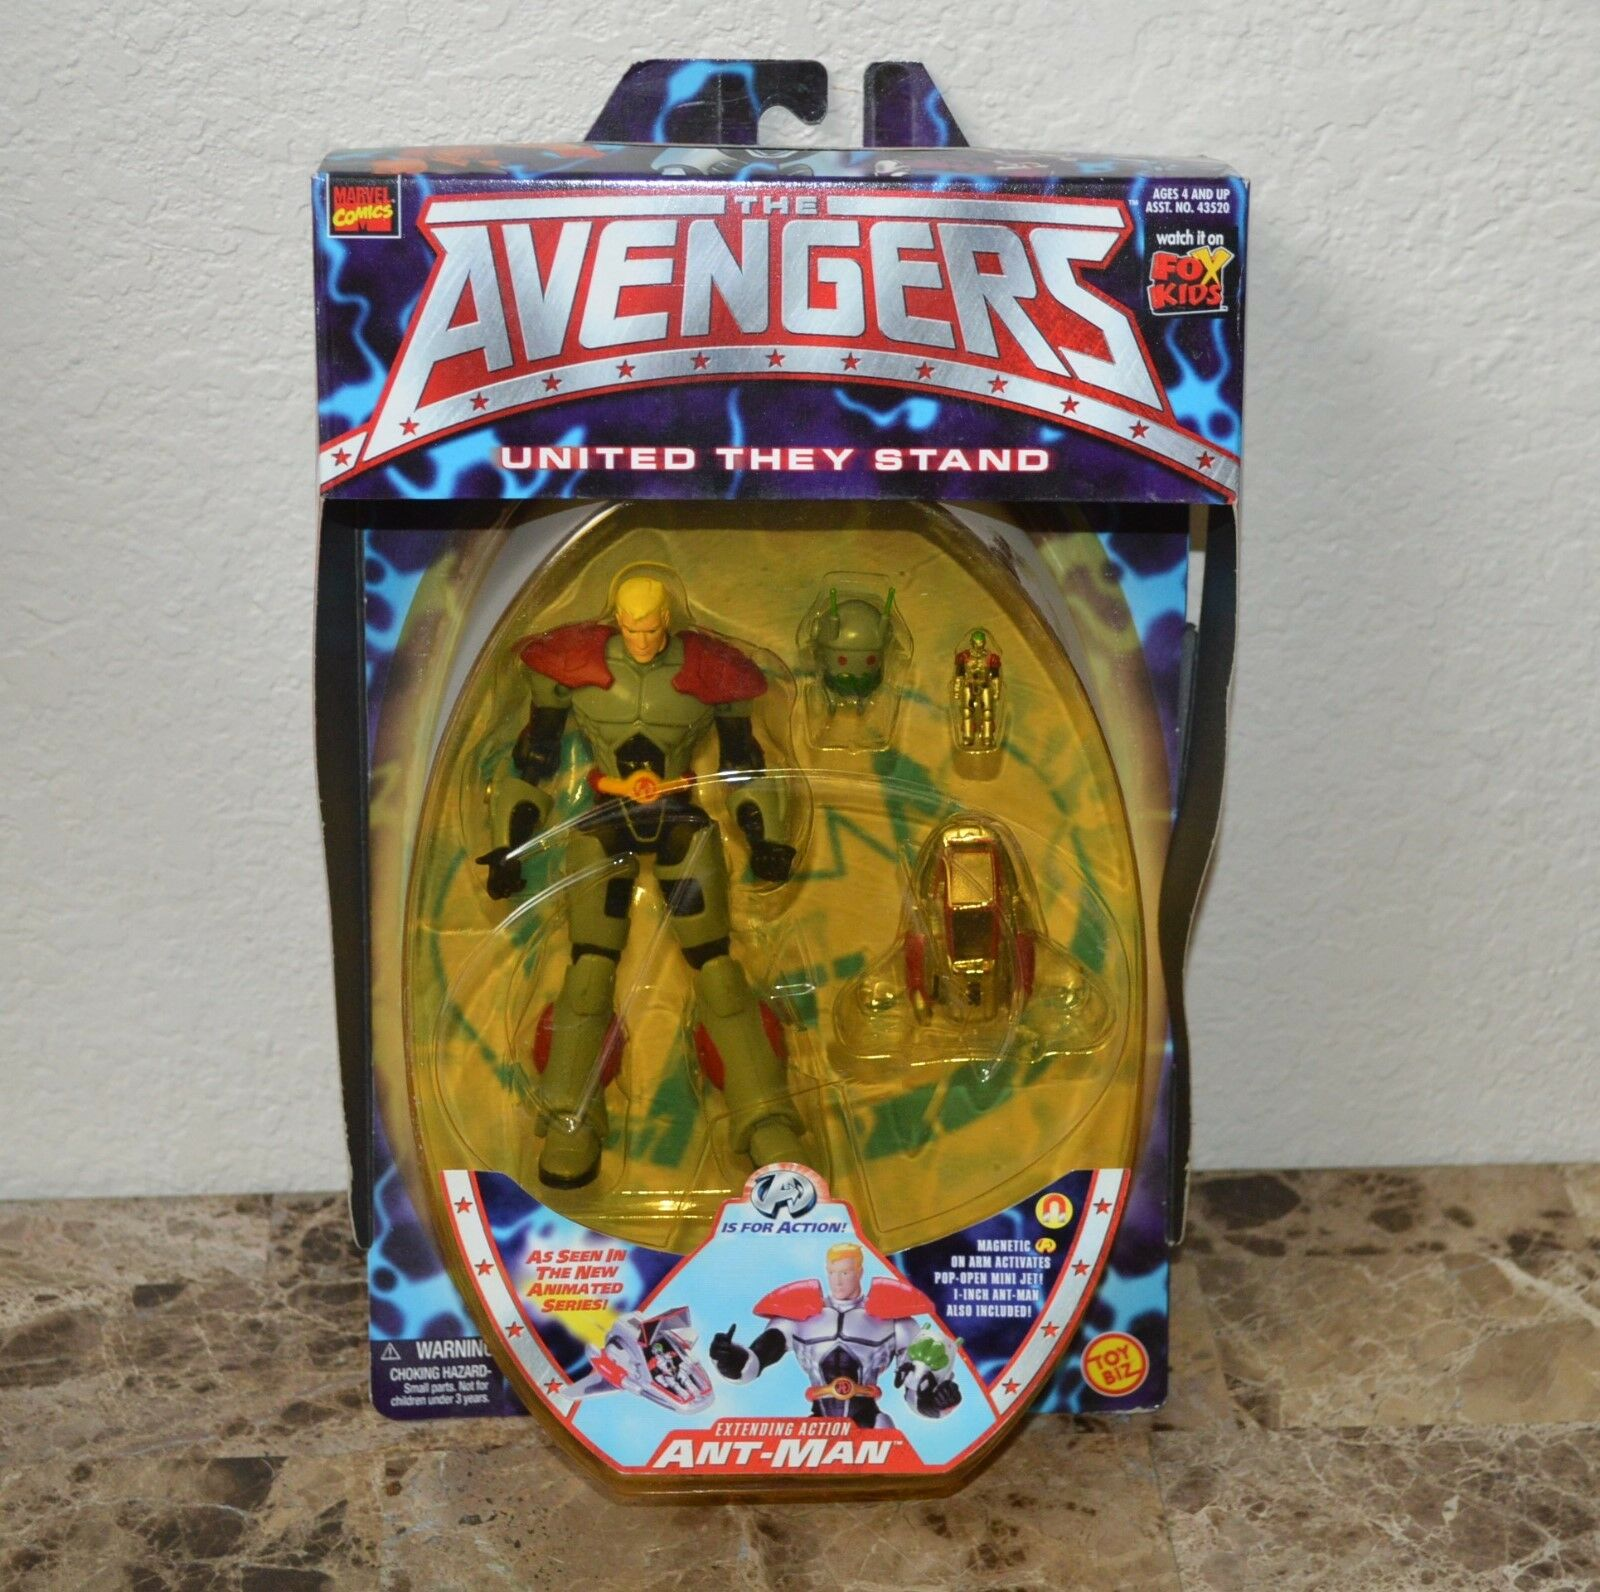 Animated Avengers Ant-Man Action Figure by Marvel Toybiz United they Stand